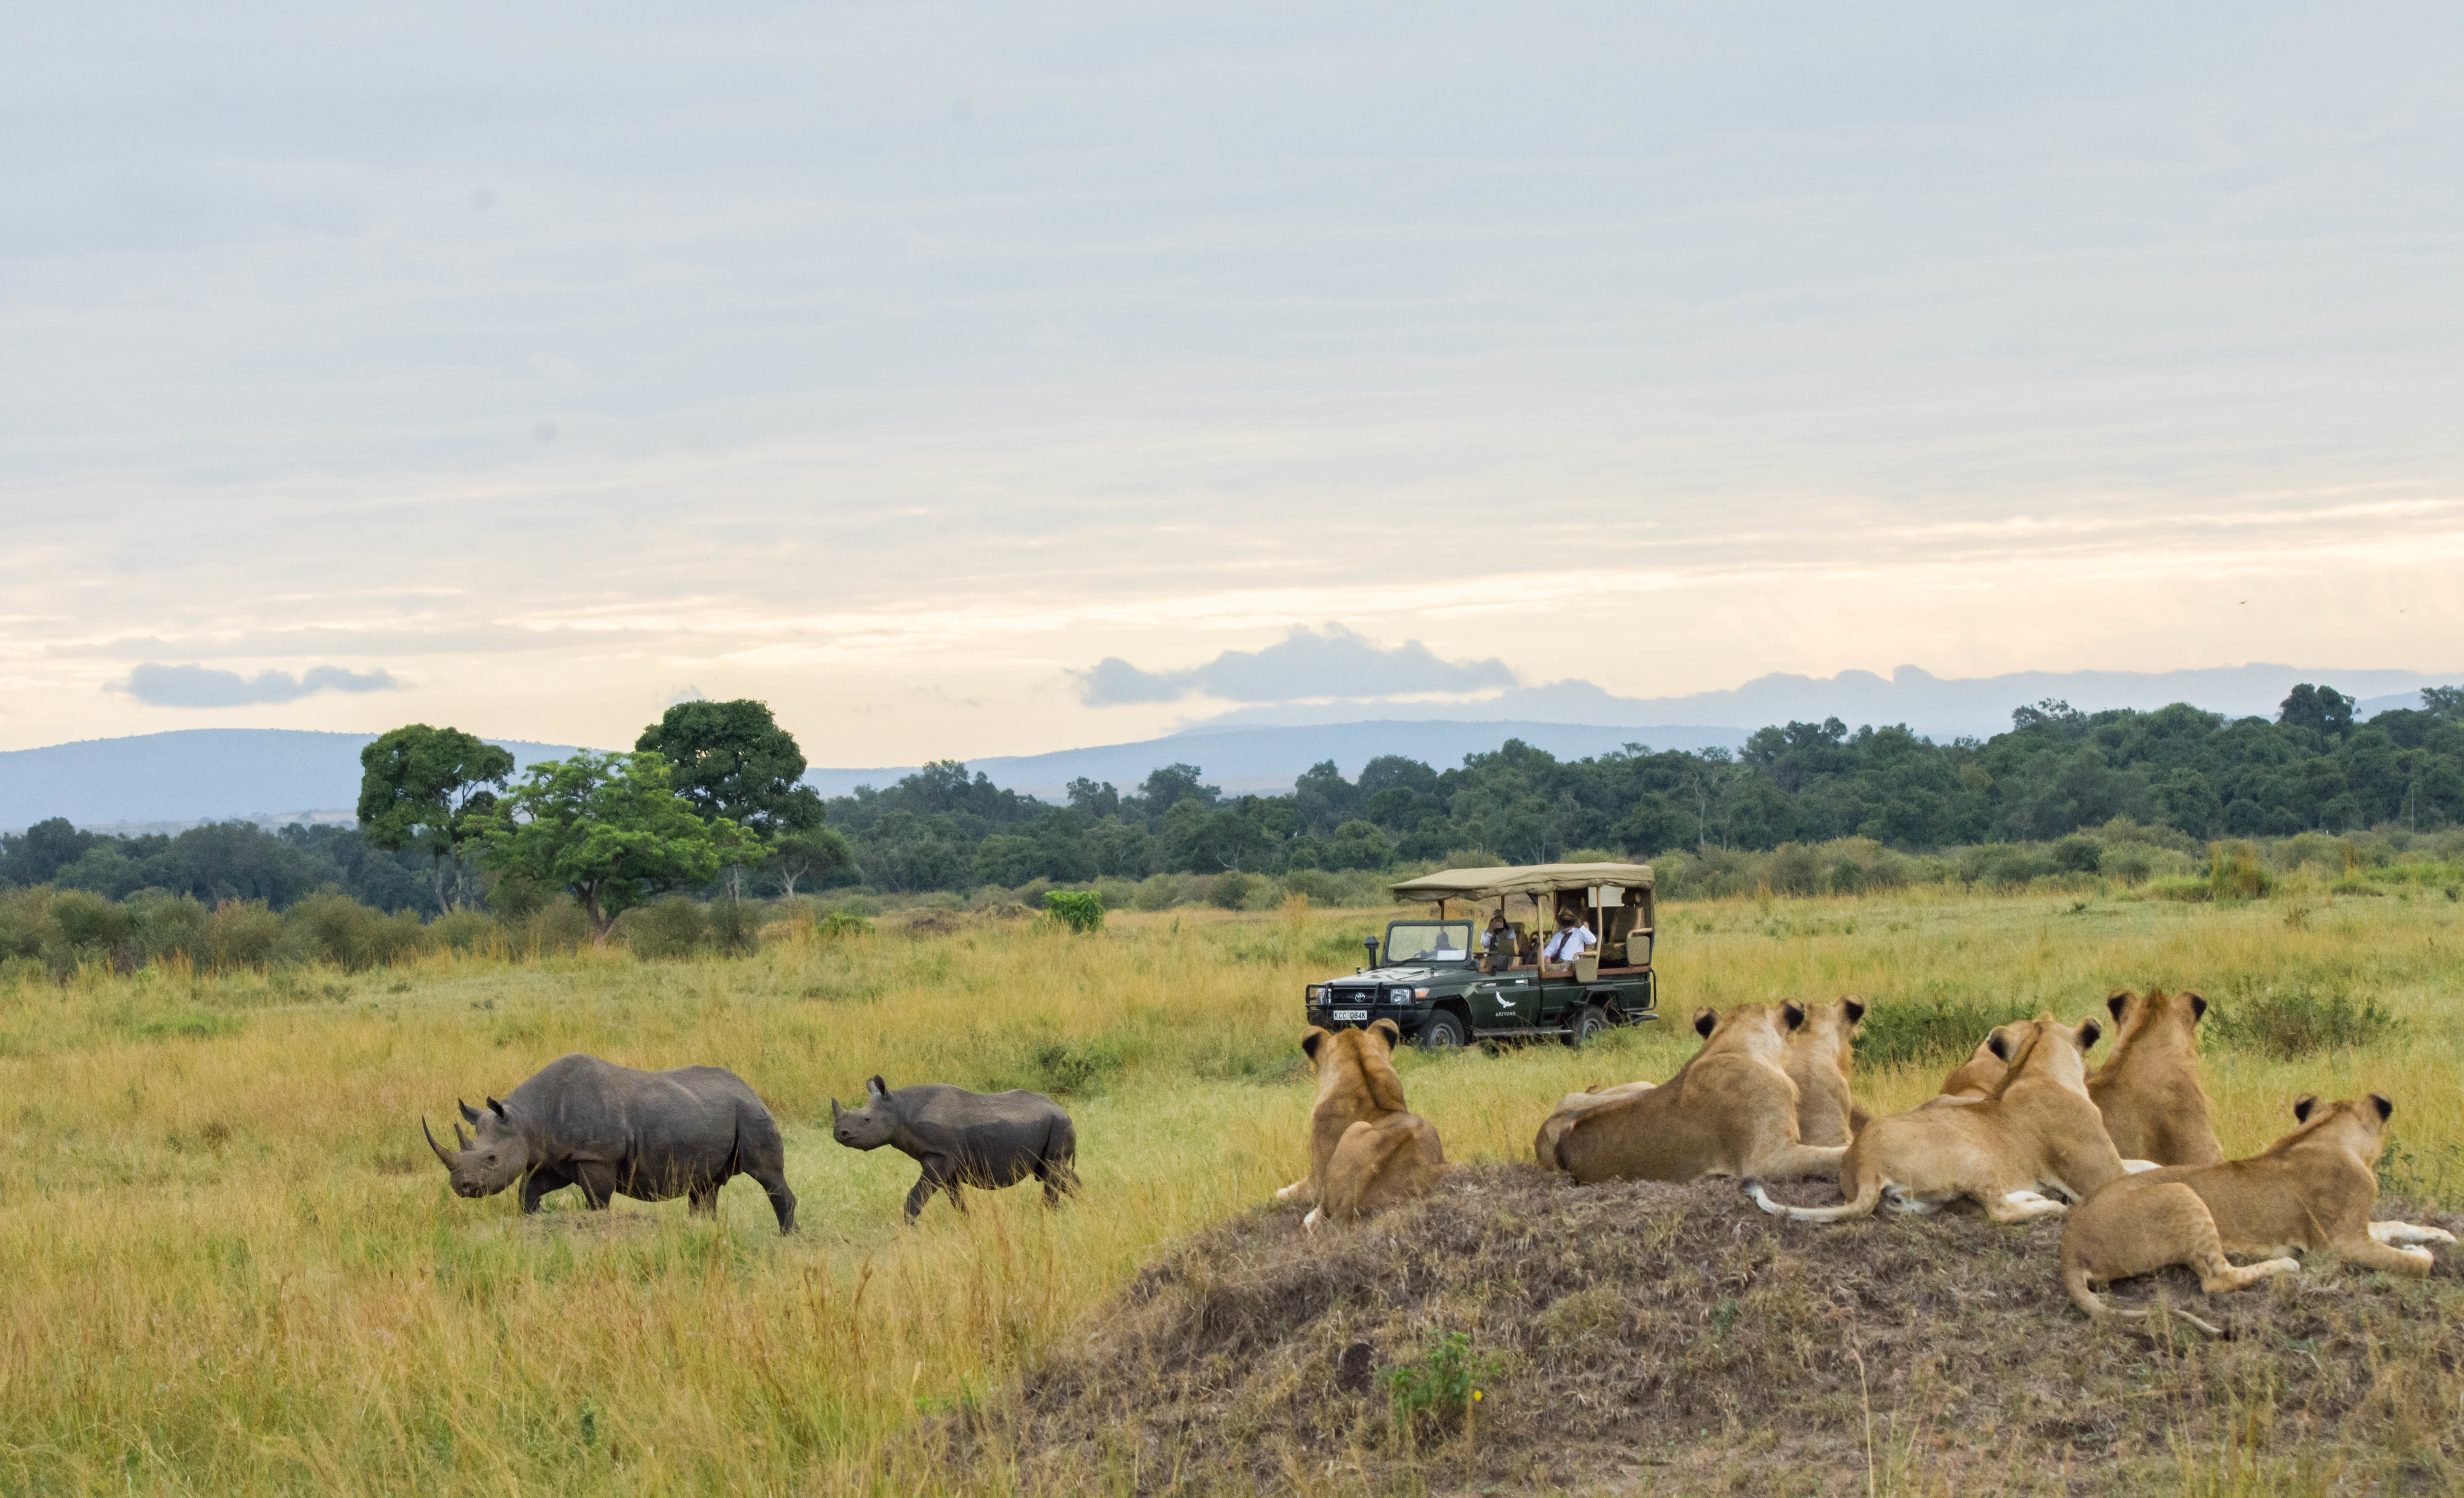 A pride of lions looking at black rhino